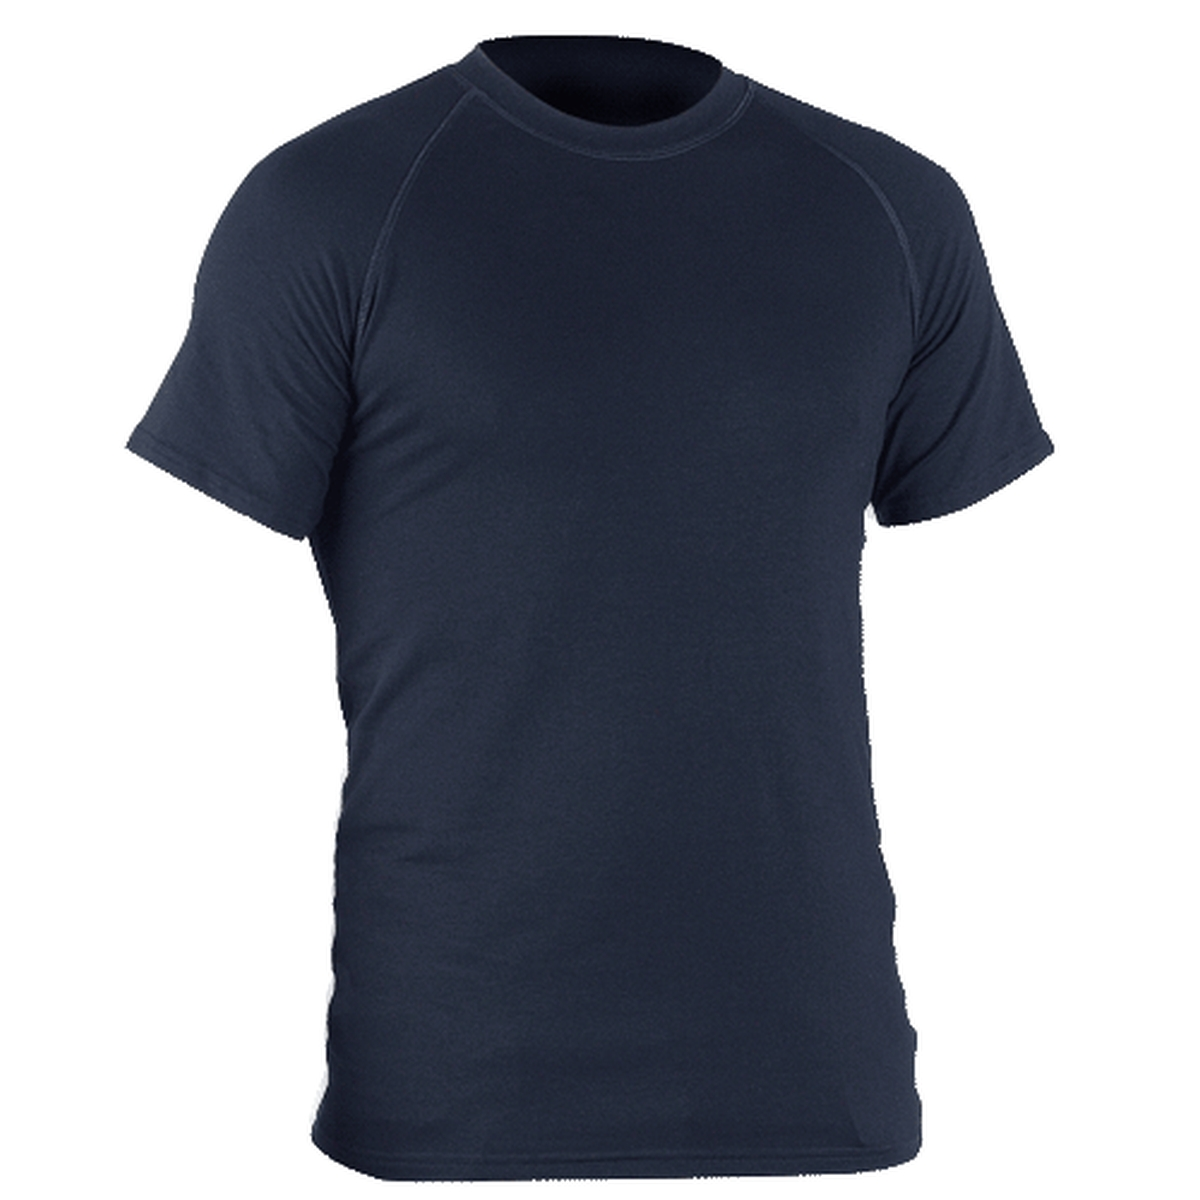 Buy Compression Shirt - Blauer Online at Best price - IL a21cab334